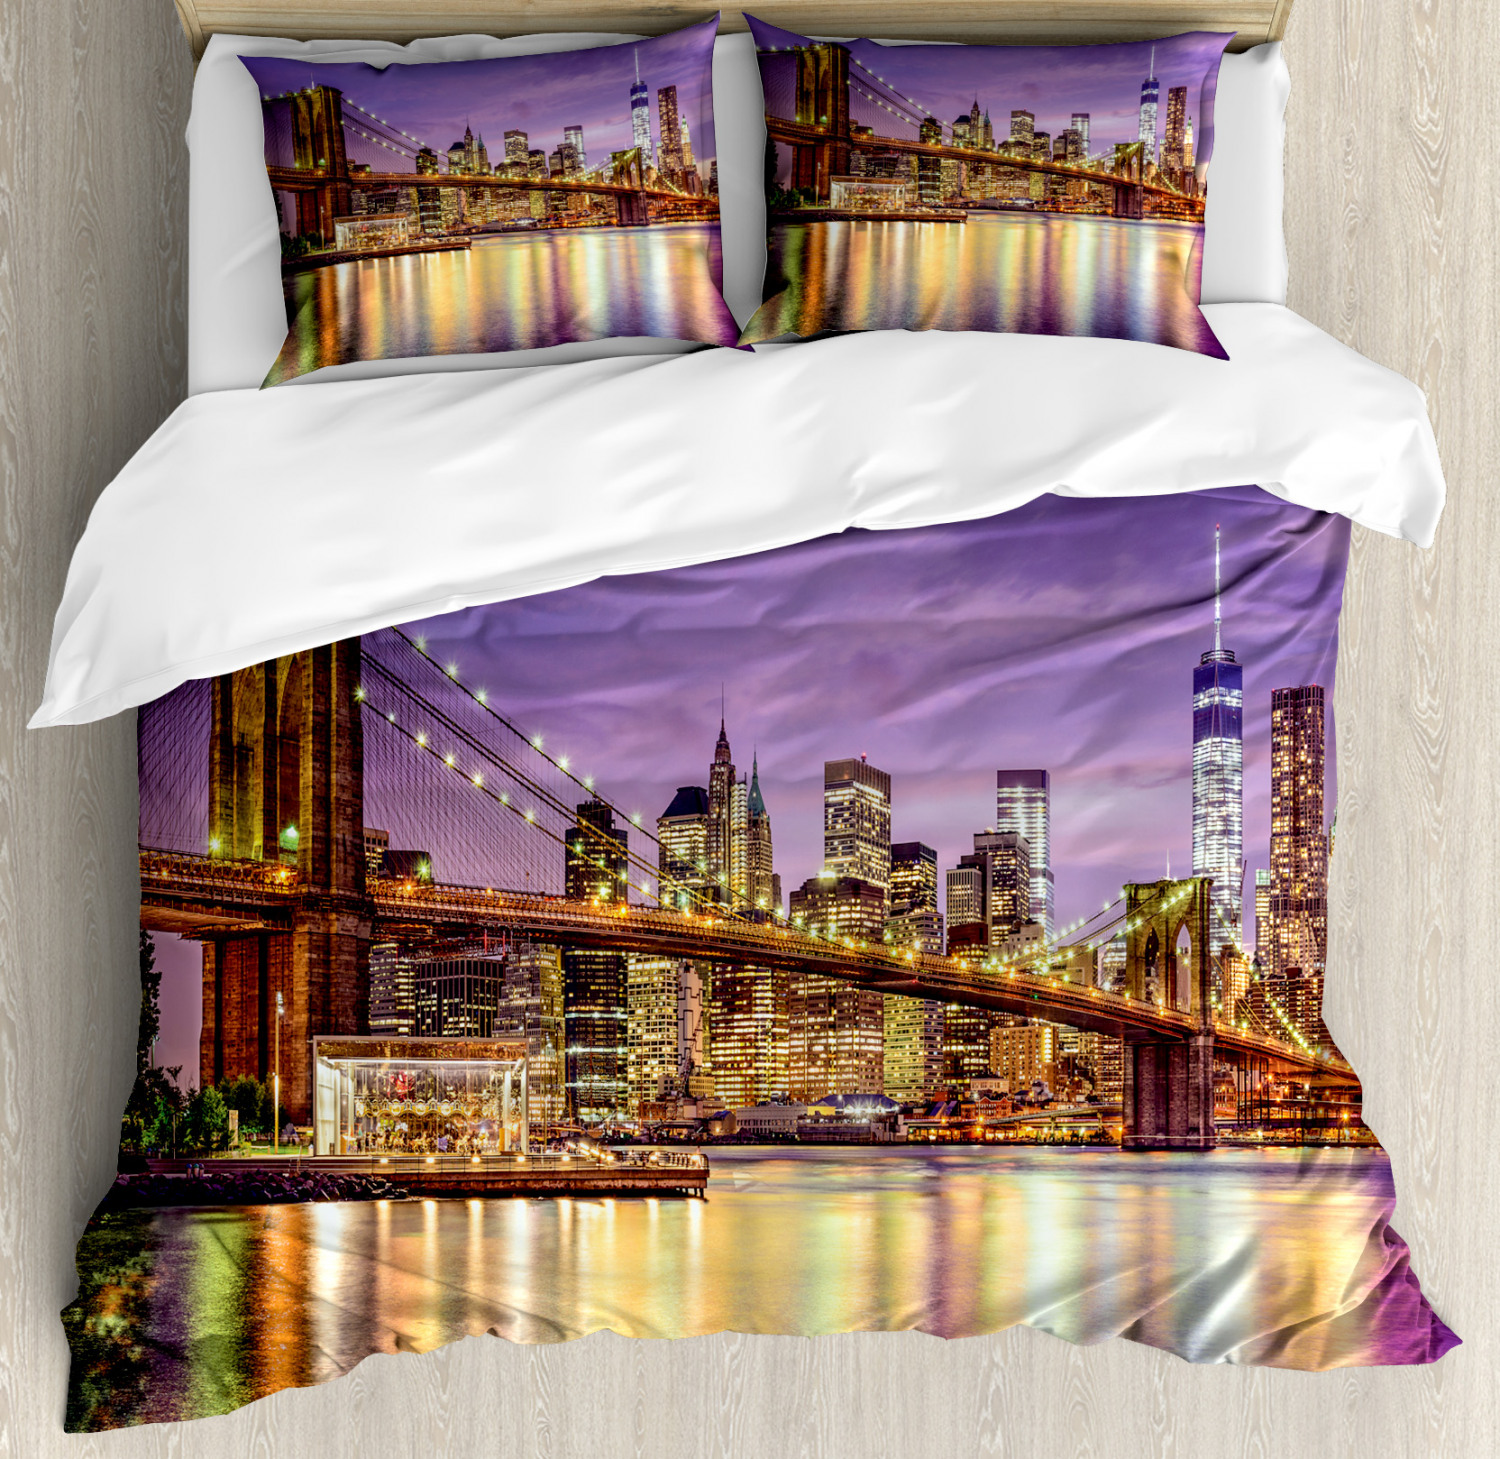 Citylife Duvet Cover Set with Pillow Shams Broadway Scenery NYC Print